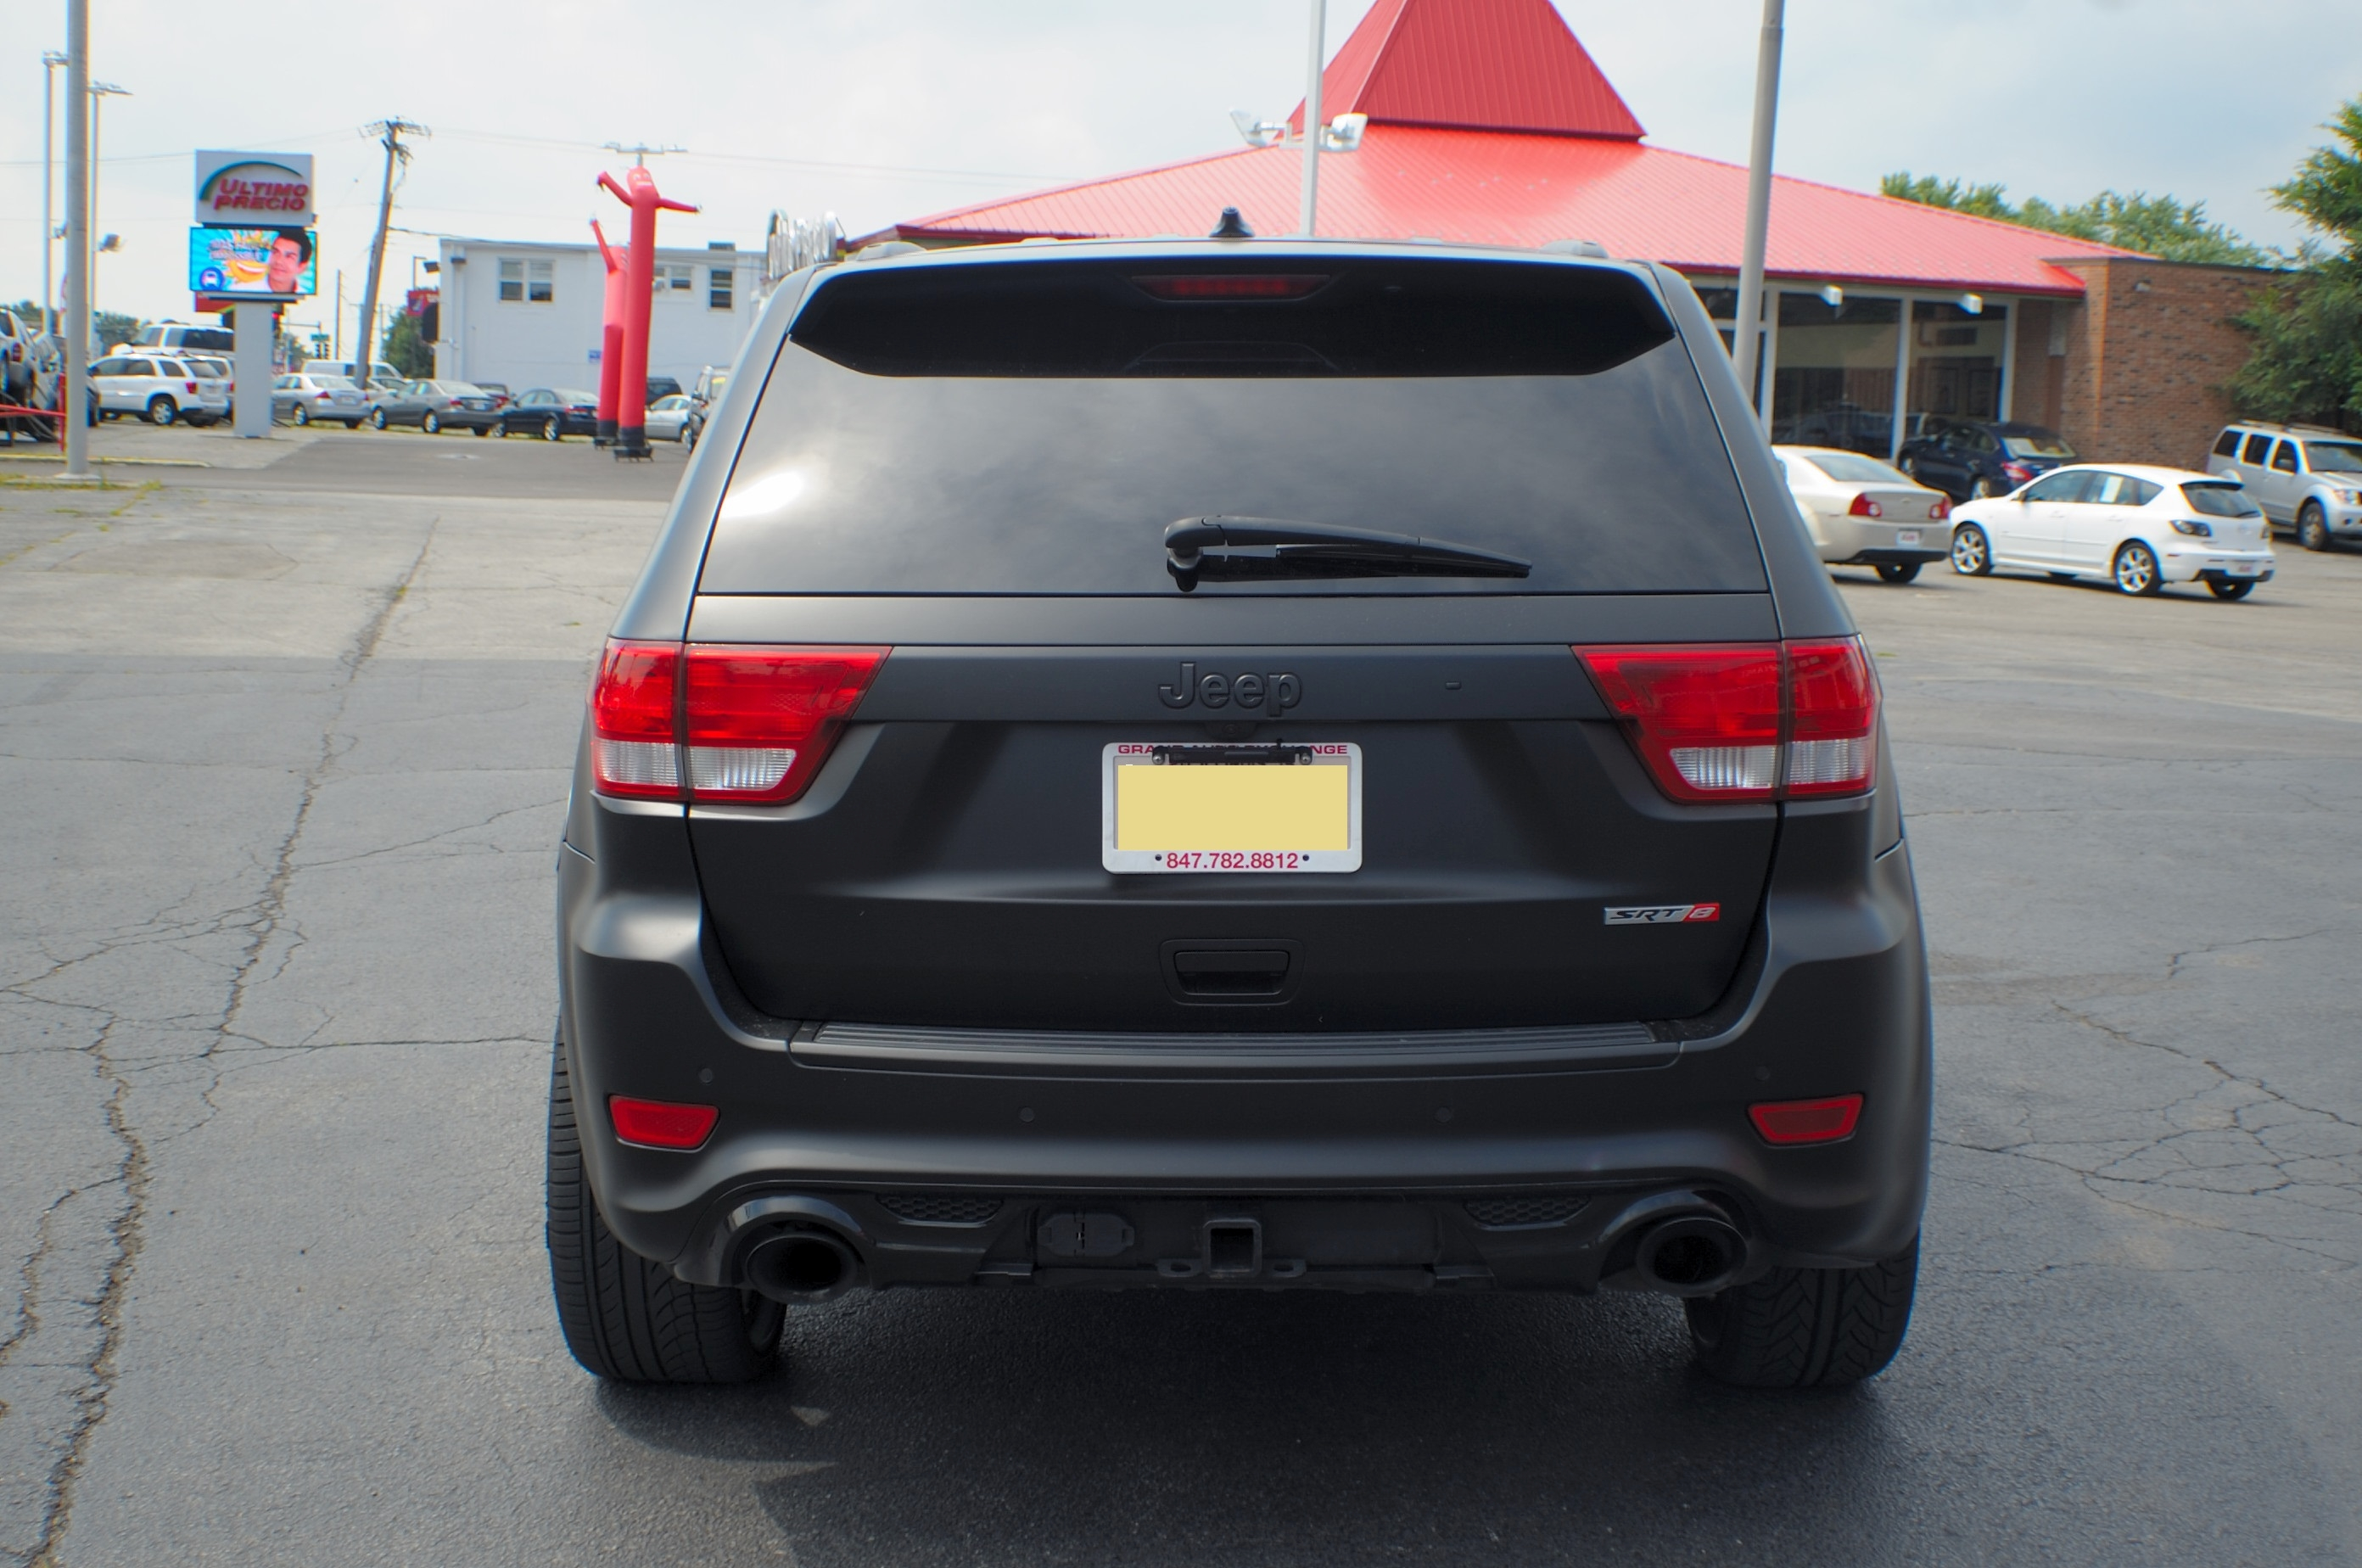 2012 Jeep Grand Cherokee Flat Black SRT8 Navigation Used SUV Sale Mchenry Wadsworth